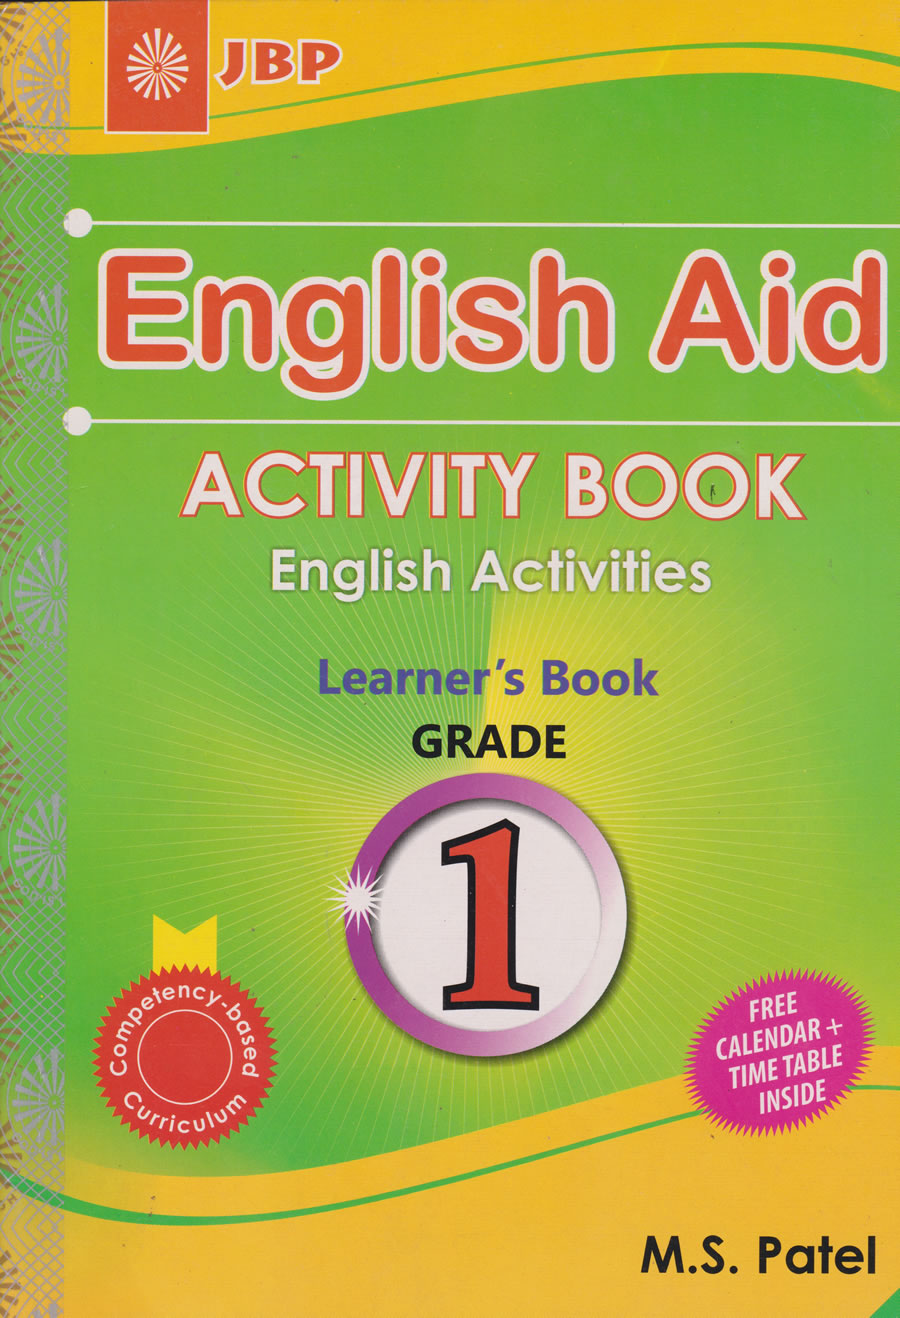 English Aid Activity book Grade 1 | Books, Stationery, Computers, Laptops  and more  Buy online and get free delivery on orders above Ksh  2,000  Much